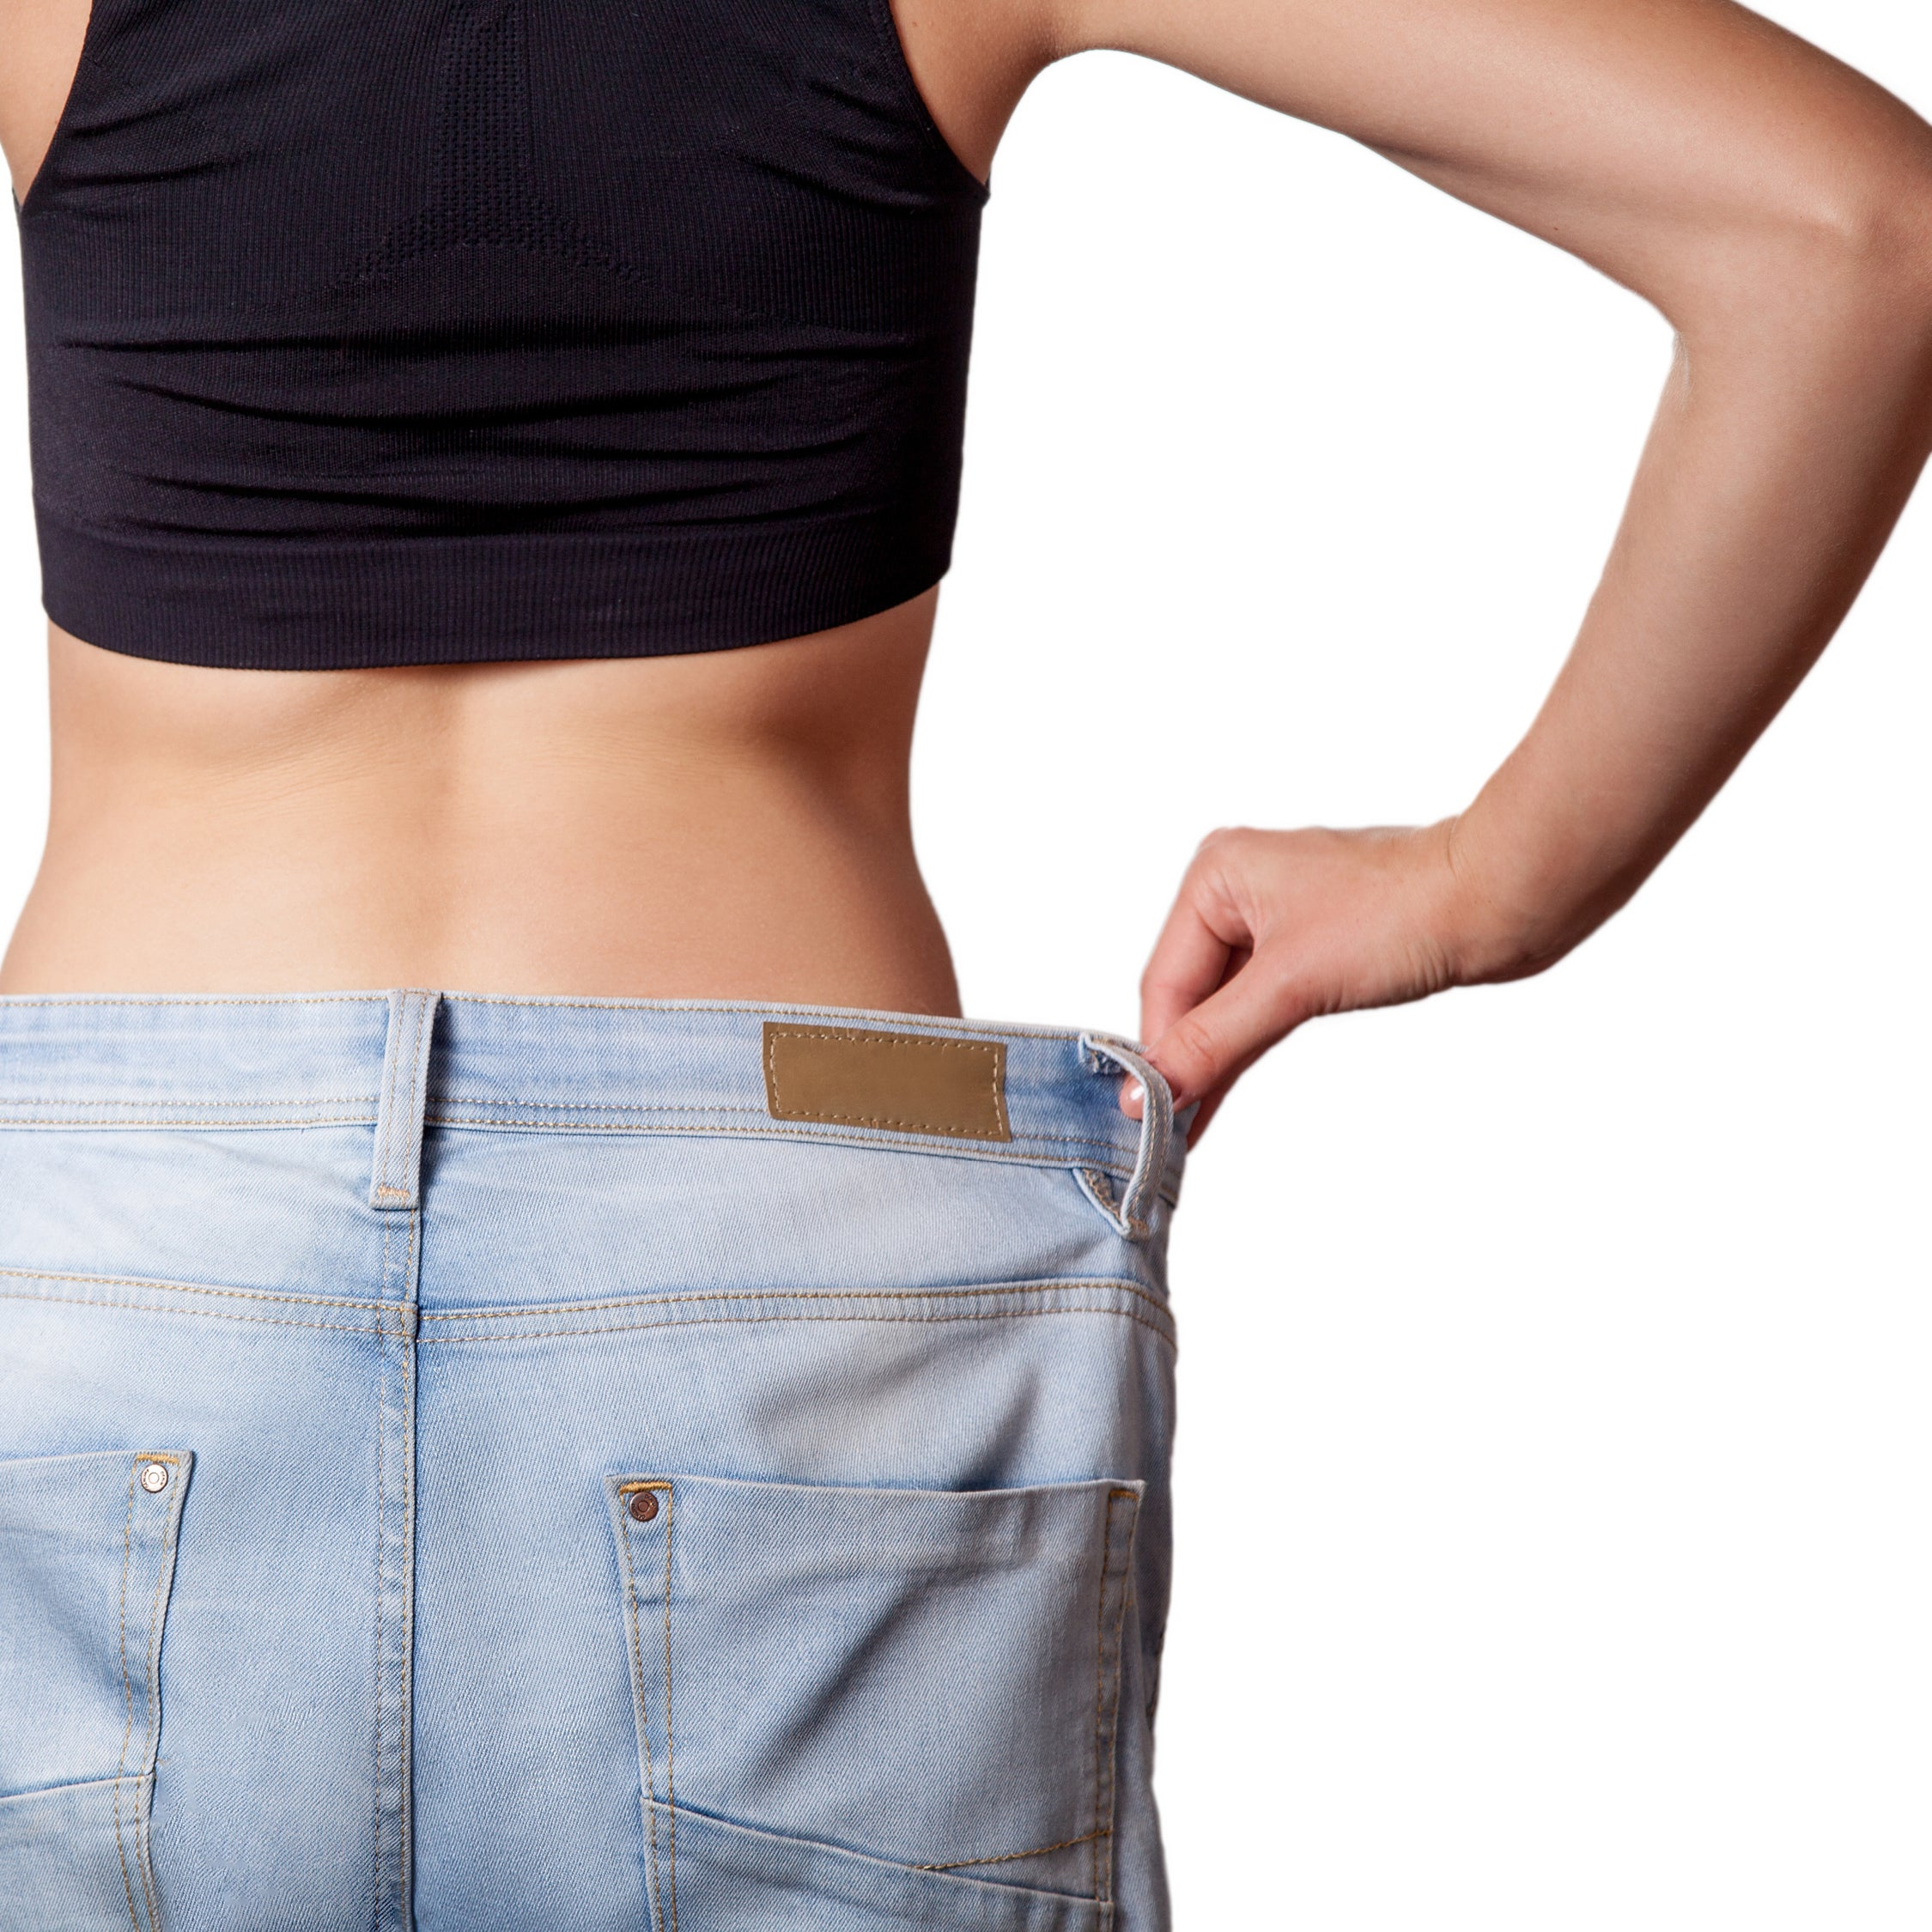 NUTRITIONAL DEFICIENCIES OF WEIGHT LOSS SURGERY (WLS) AND HOW TO CORRECT THEM